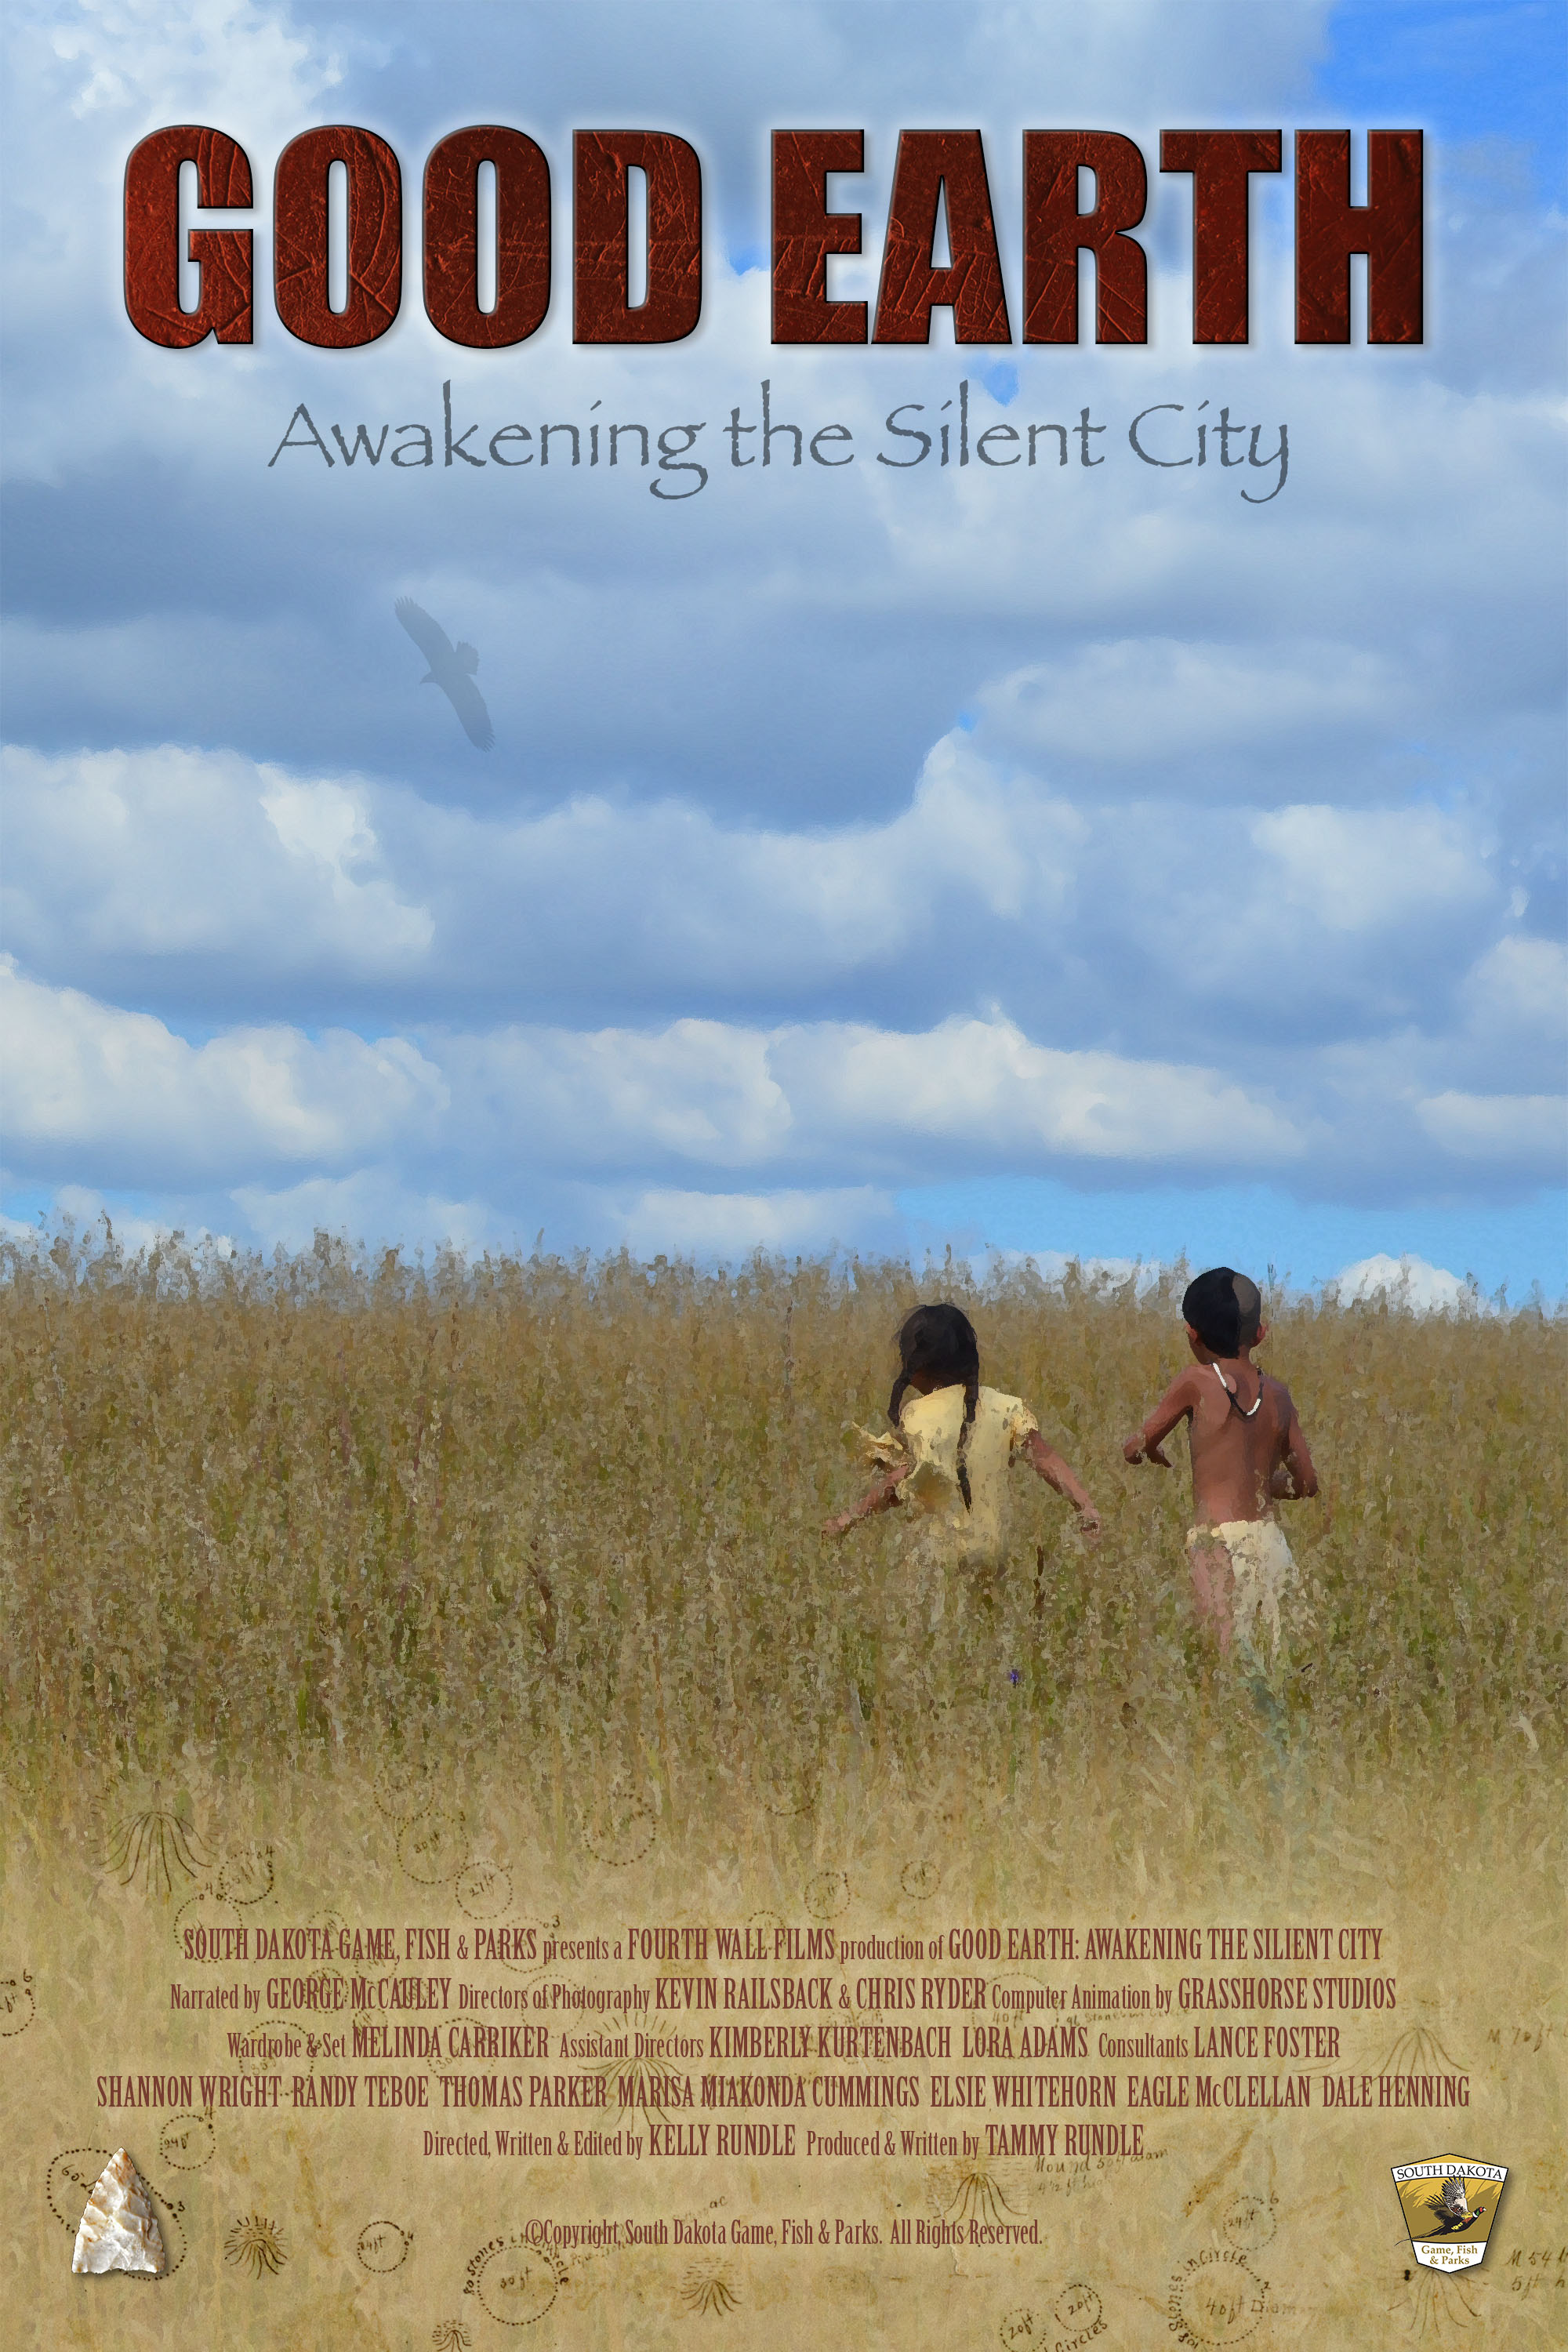 Good Earth: Awakening the Silent City - S1.jpg